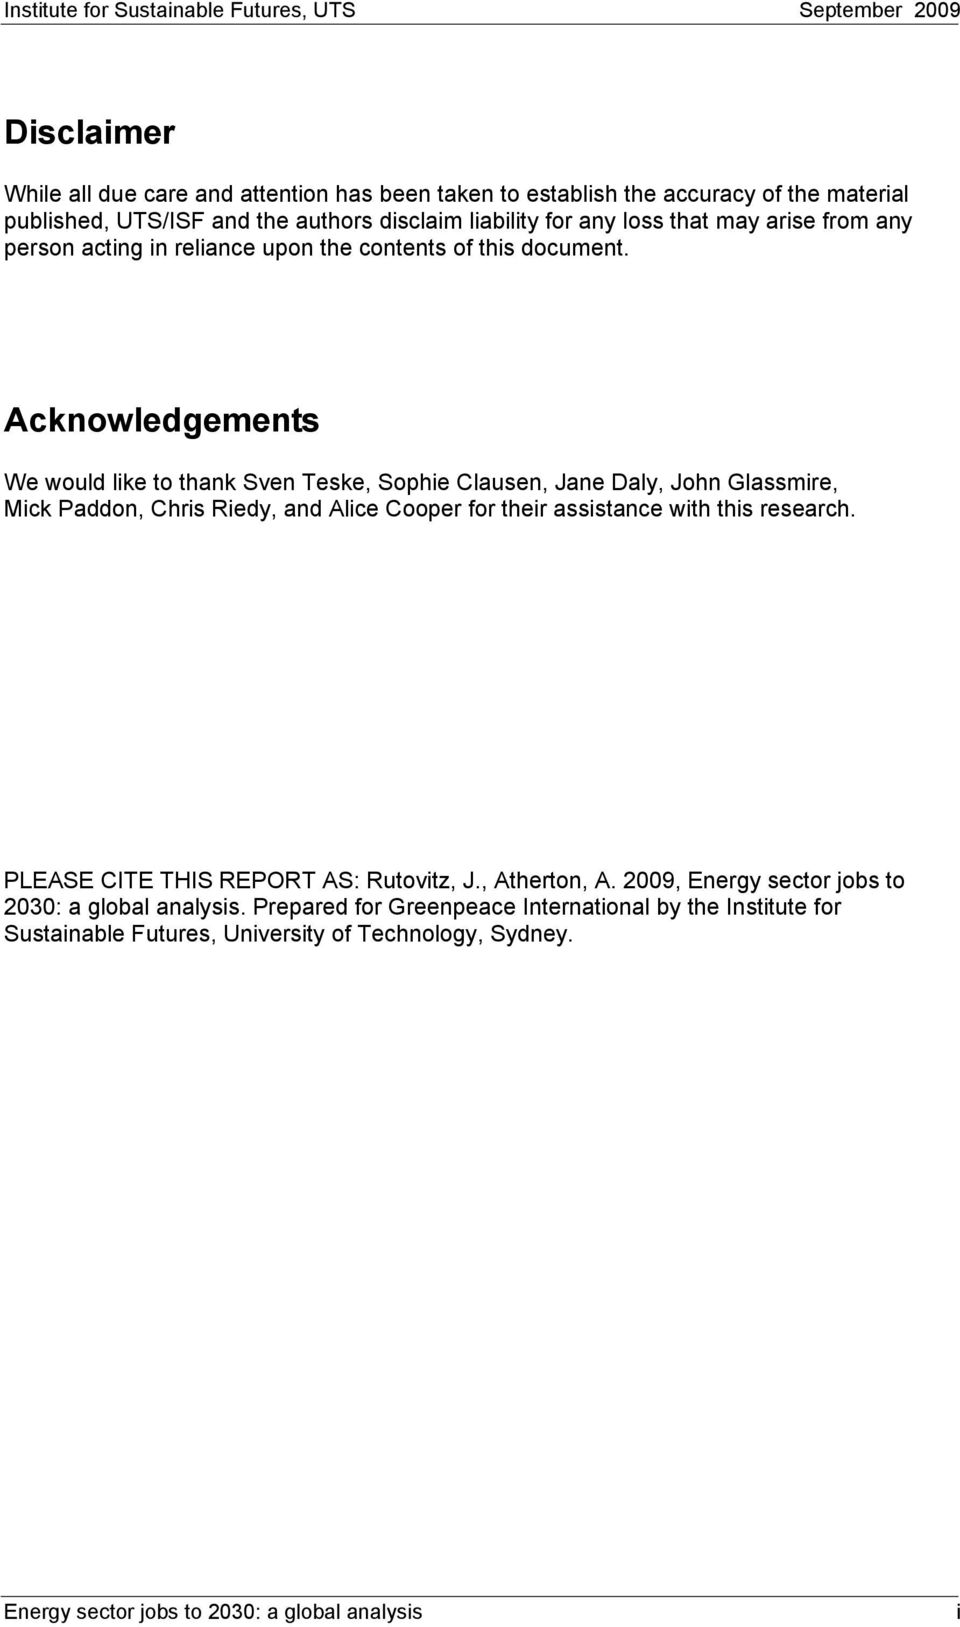 Acknowledgements We would like to thank Sven Teske, Sophie Clausen, Jane Daly, John Glassmire, Mick Paddon, Chris Riedy, and Alice Cooper for their assistance with this